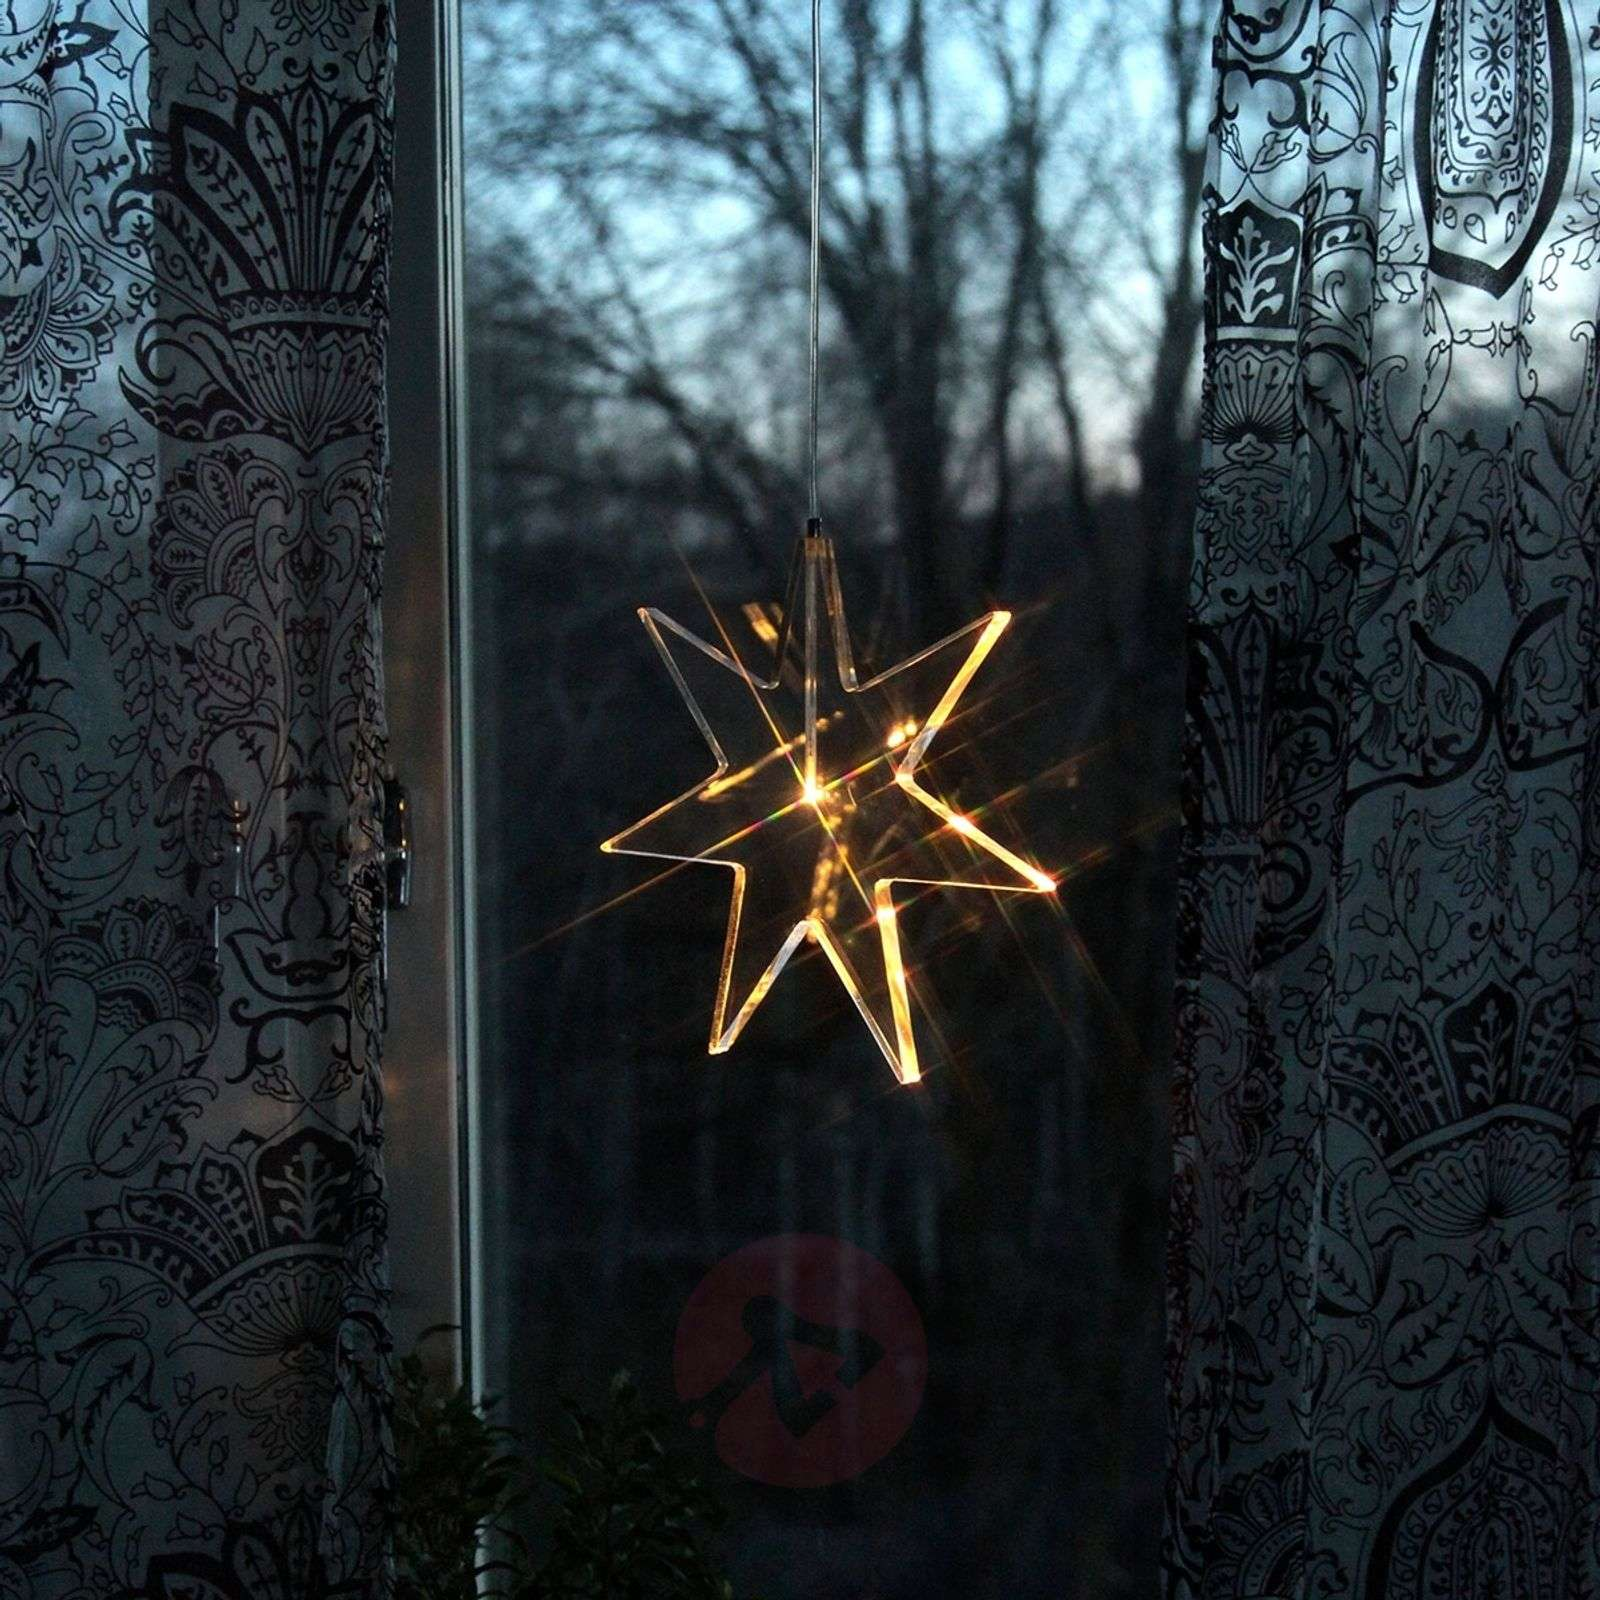 Transparent LED star decorative light Karla-1522505-01